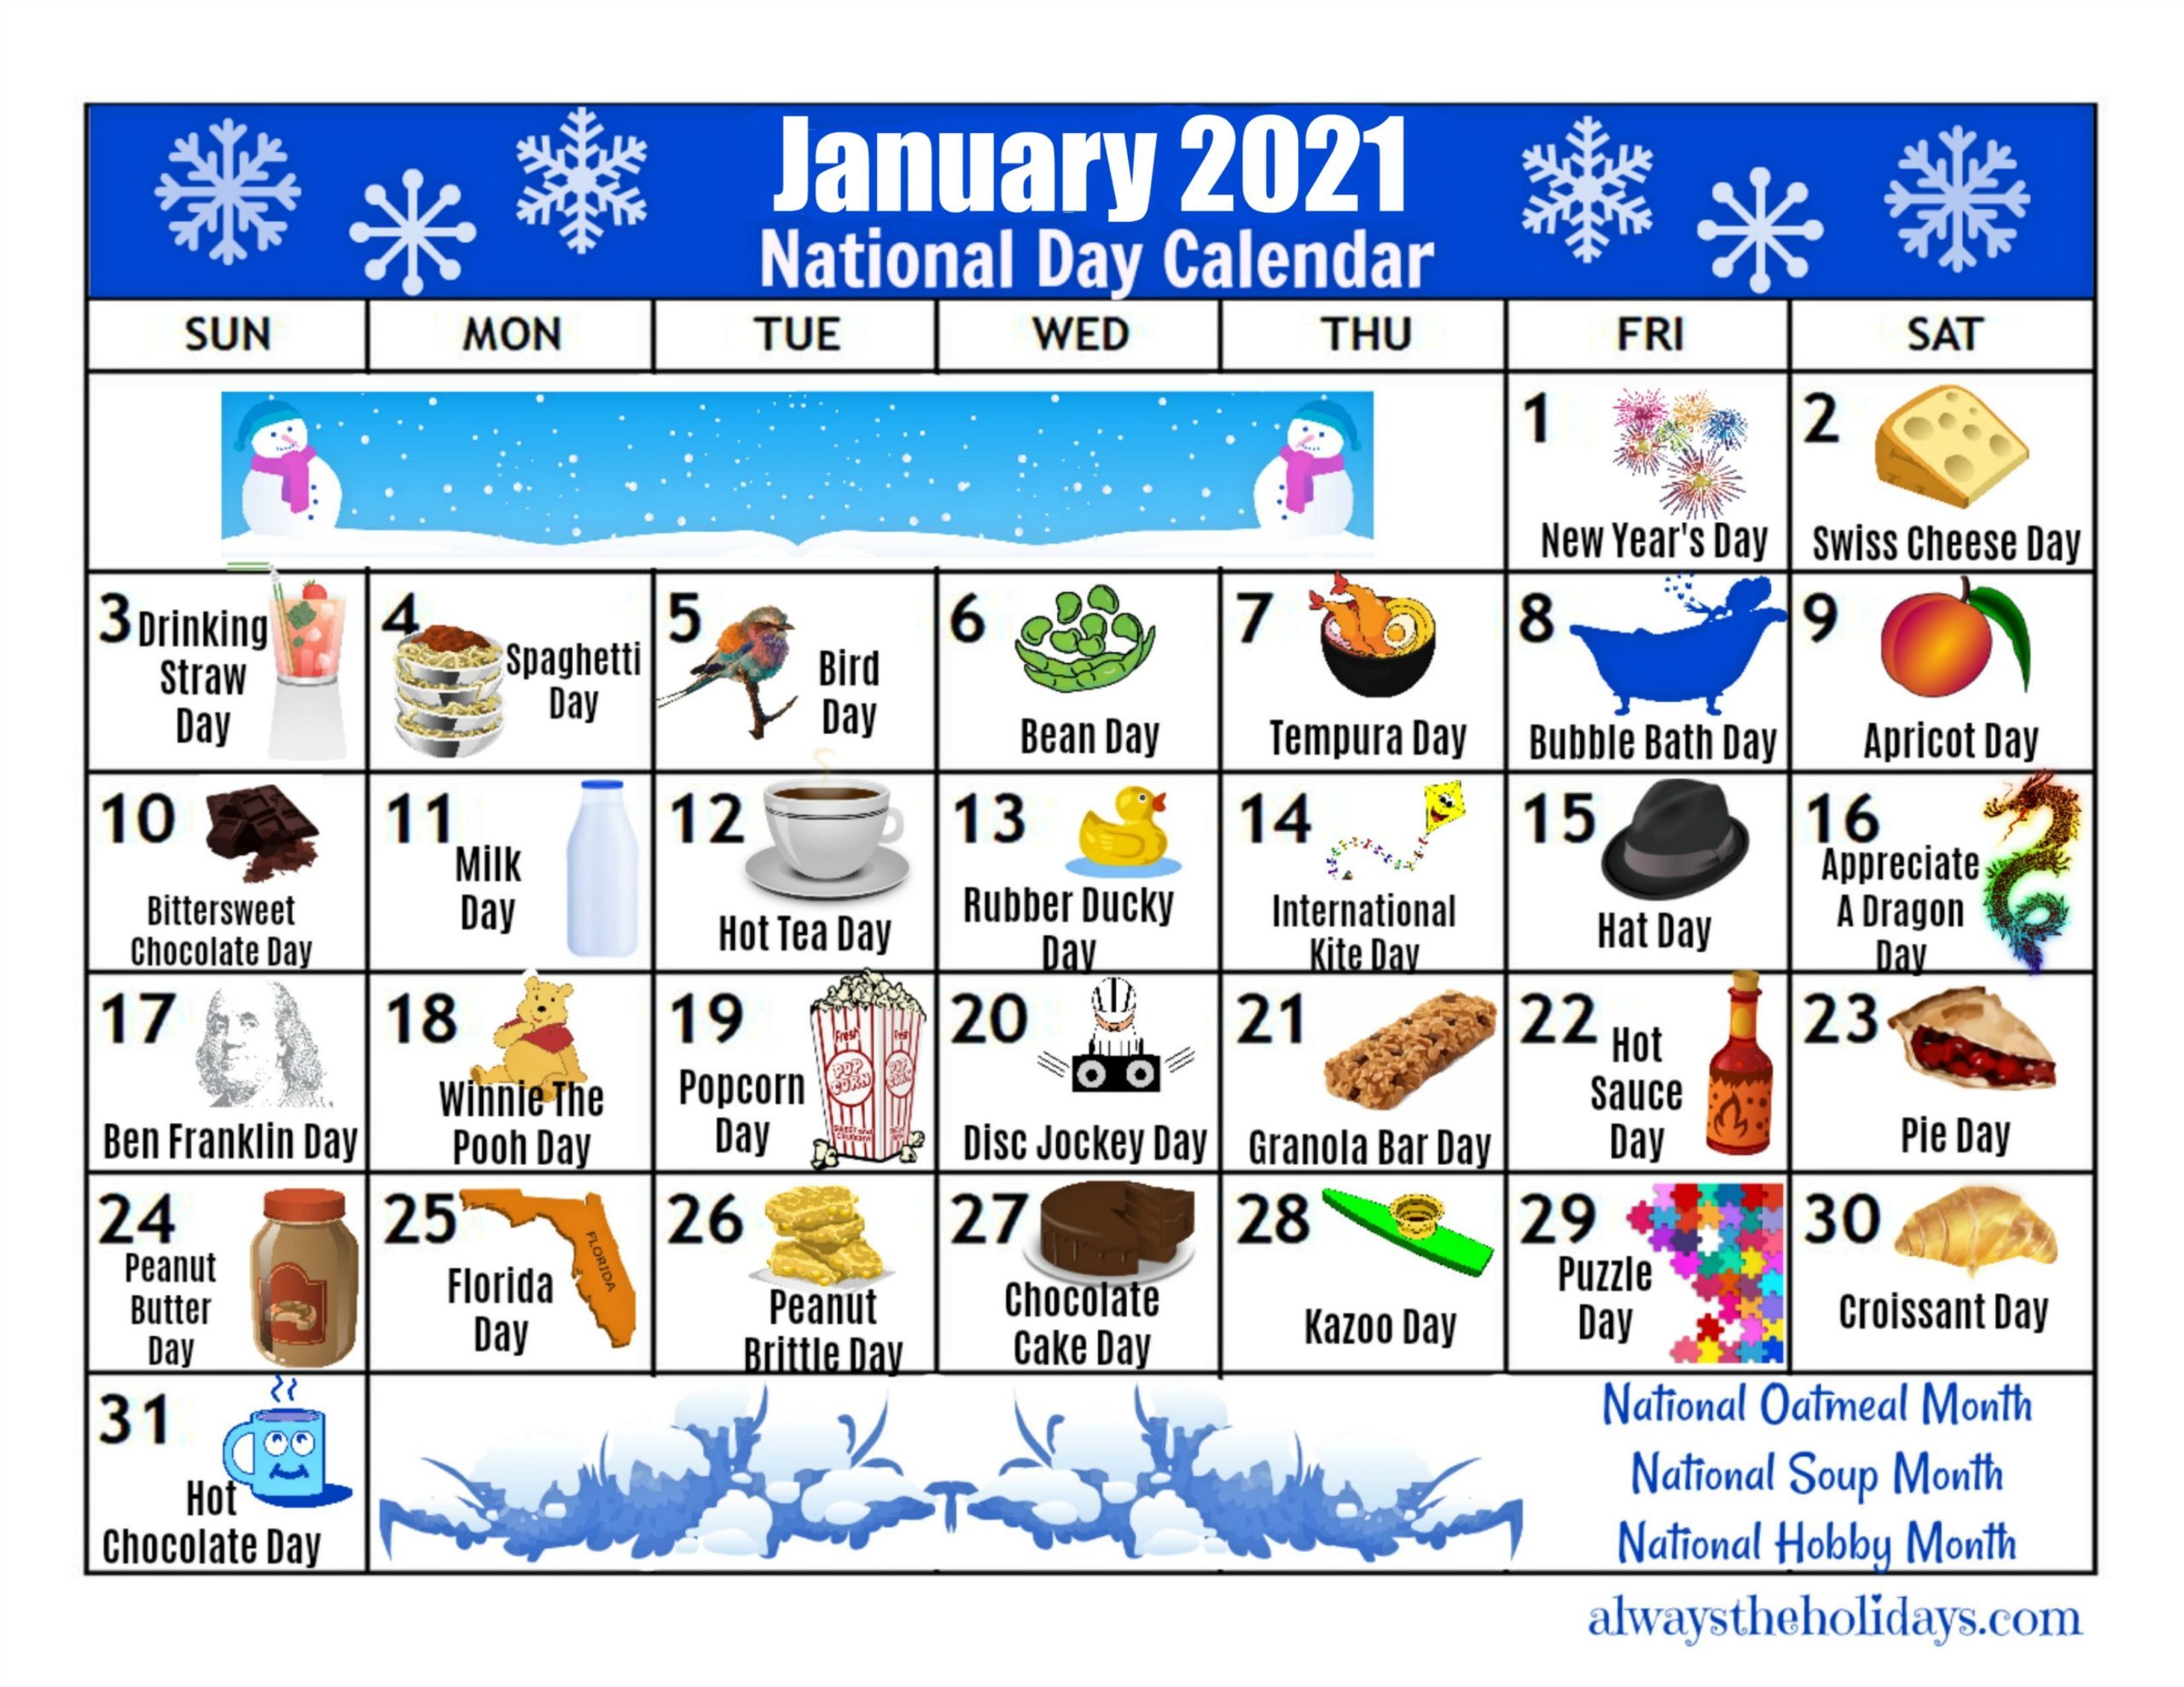 January Printable National Day Calendar 2021 - Free Planning